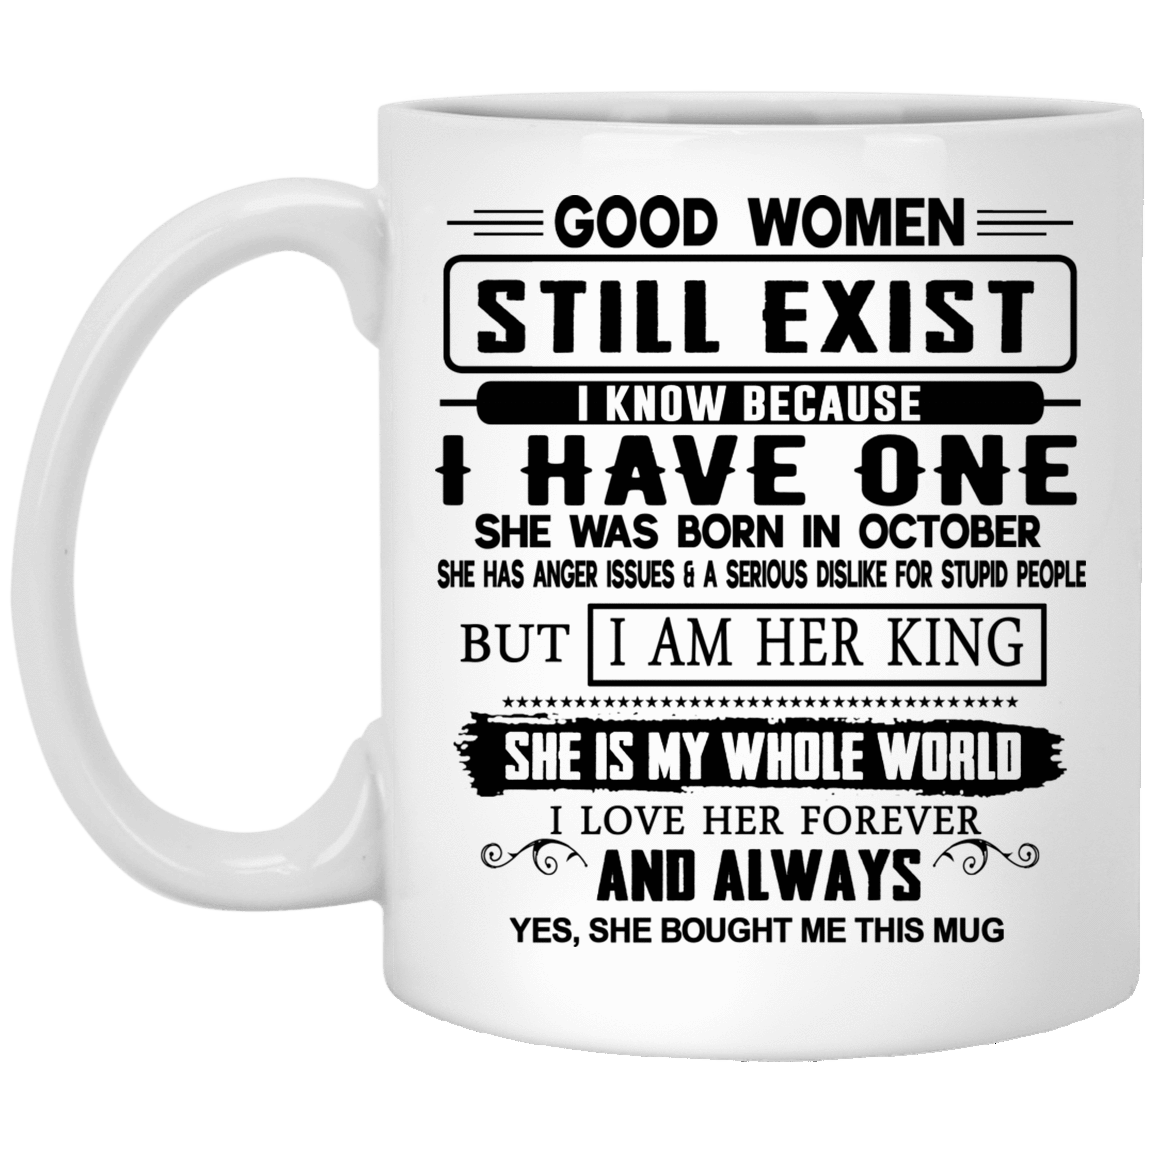 Good Women Still Exist I Have One He Was Born In October Mug 1005-9786-76399333-47417 - Tee Ript